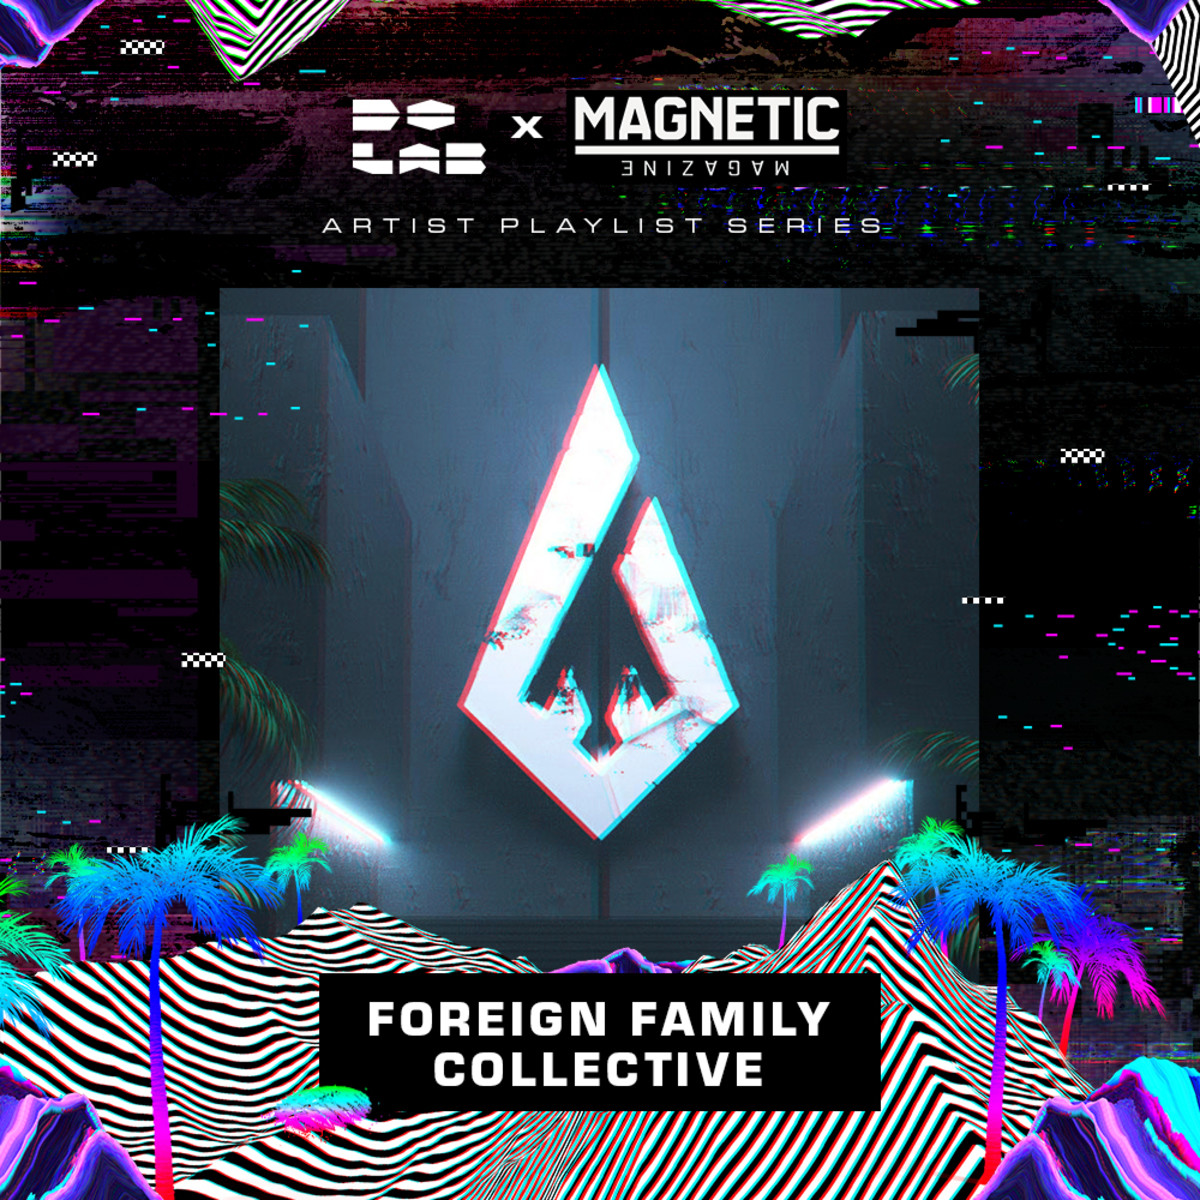 Coachella 2019 Artist Playlist - Foreign Family Collective 1000x1000